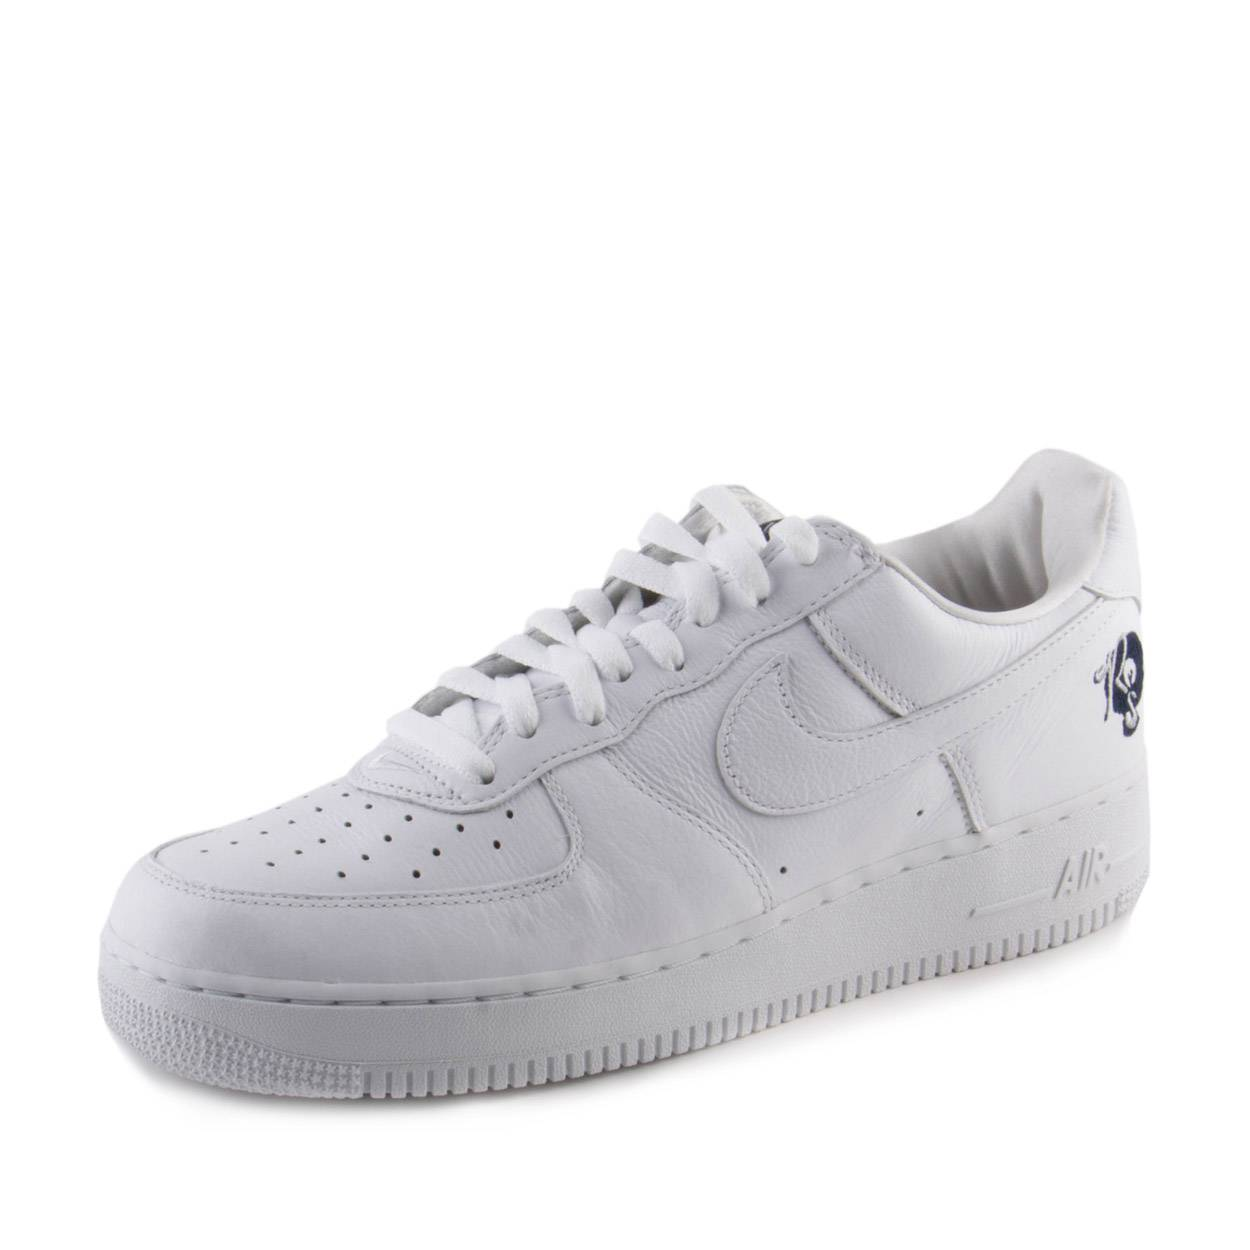 306c157c9aa824 Nike Mens Air Force 1  07 Rocafella AO1070-101 - Sole-Unlimited